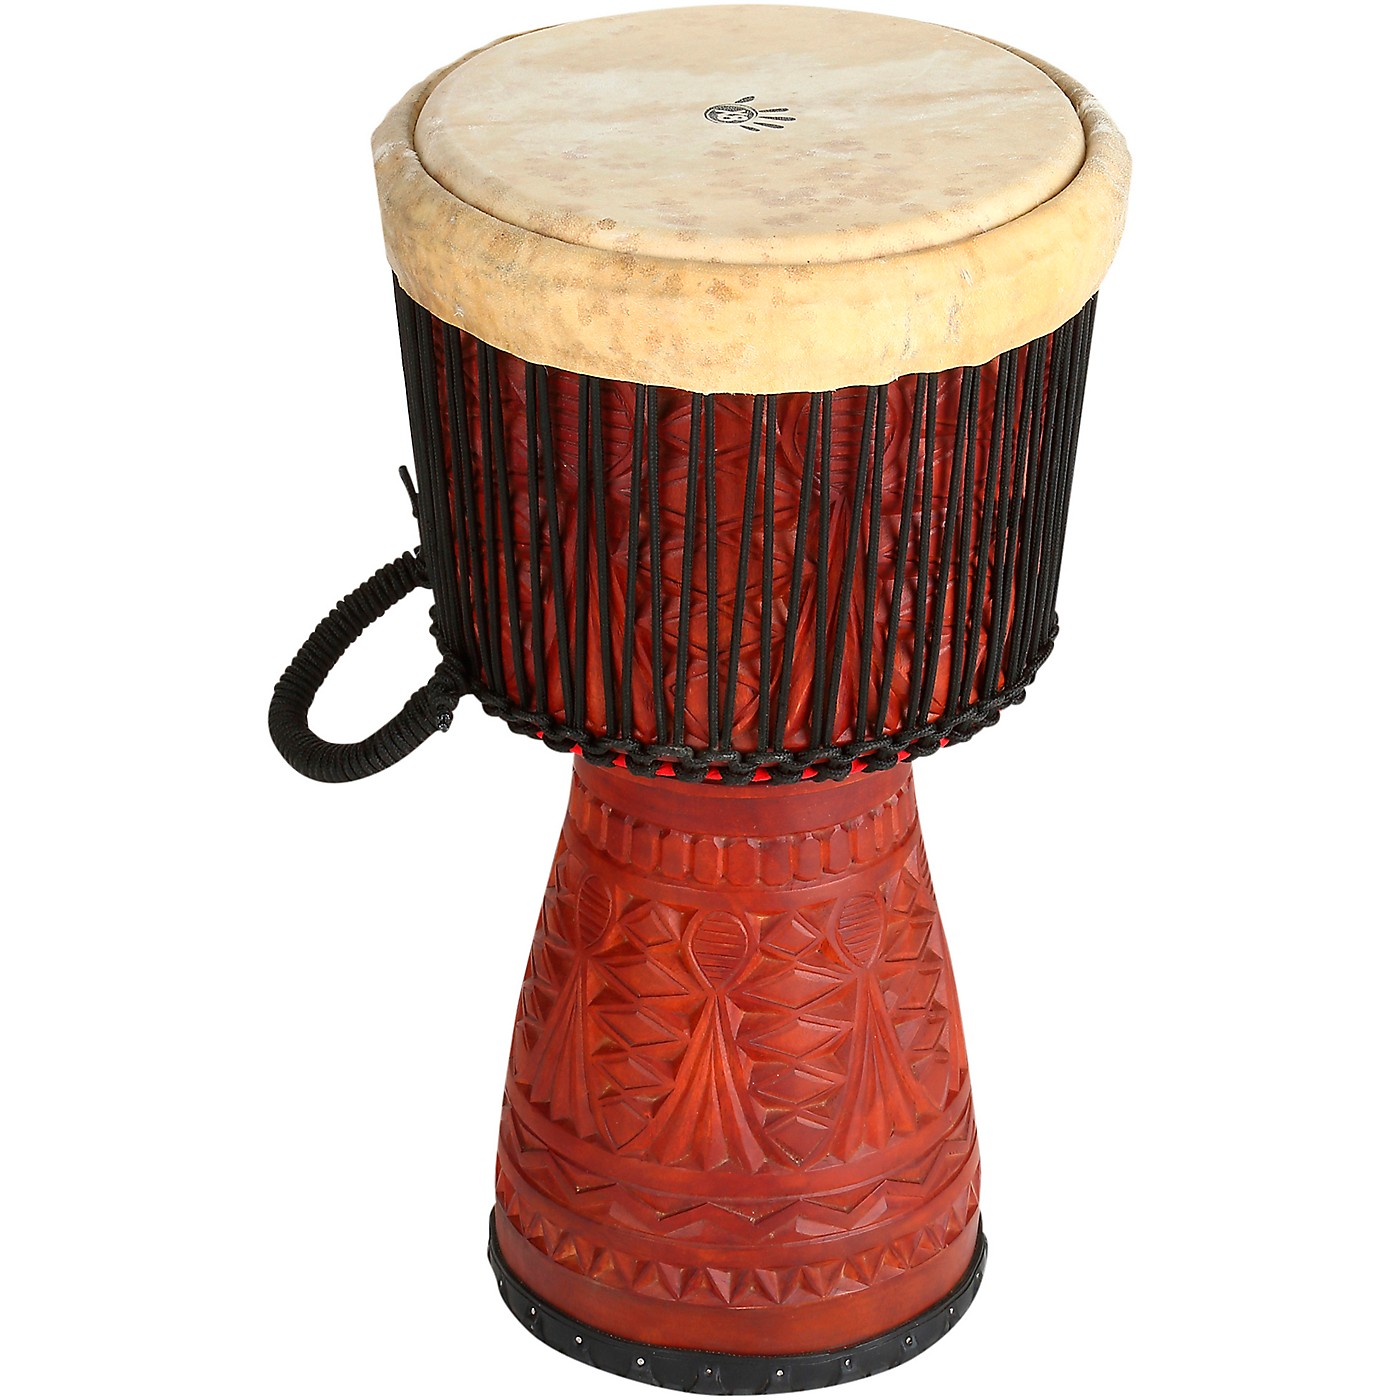 X8 Drums Venice Master Series Djembe thumbnail